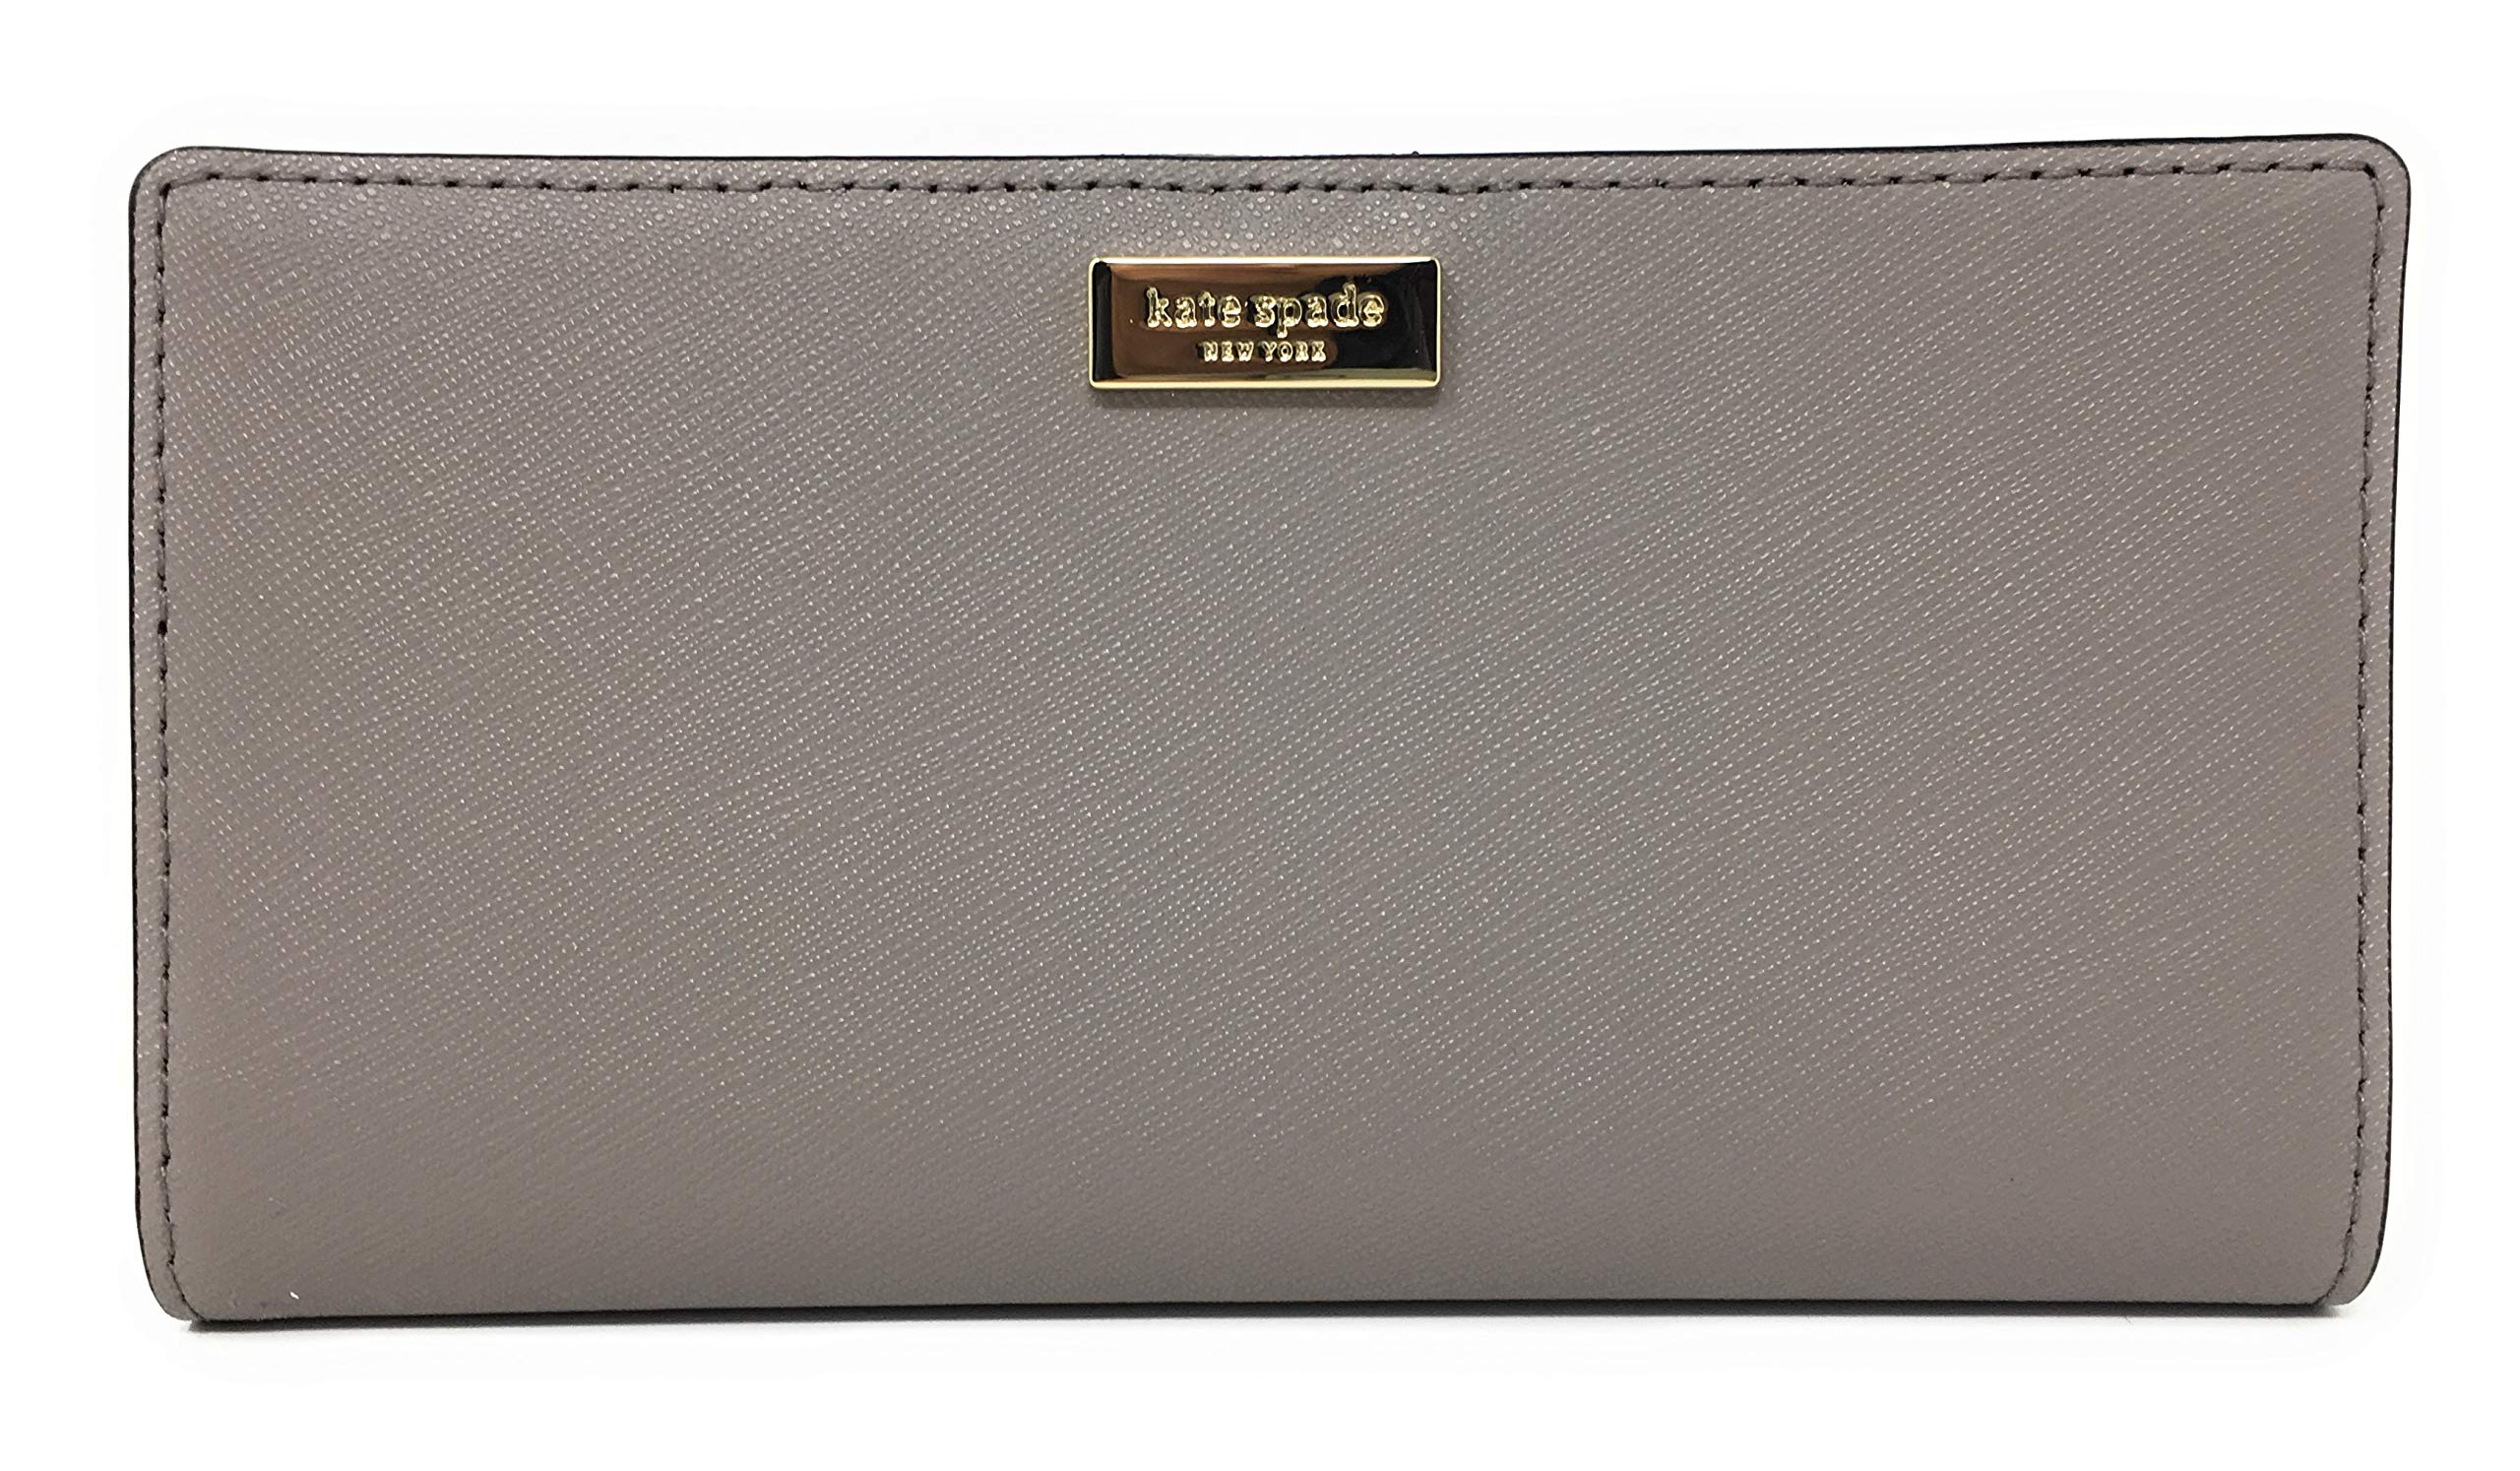 Kate Spade Laurel Way Stacy Saffiano Leather Bifold Wallet, Cityscape Grey Taupe